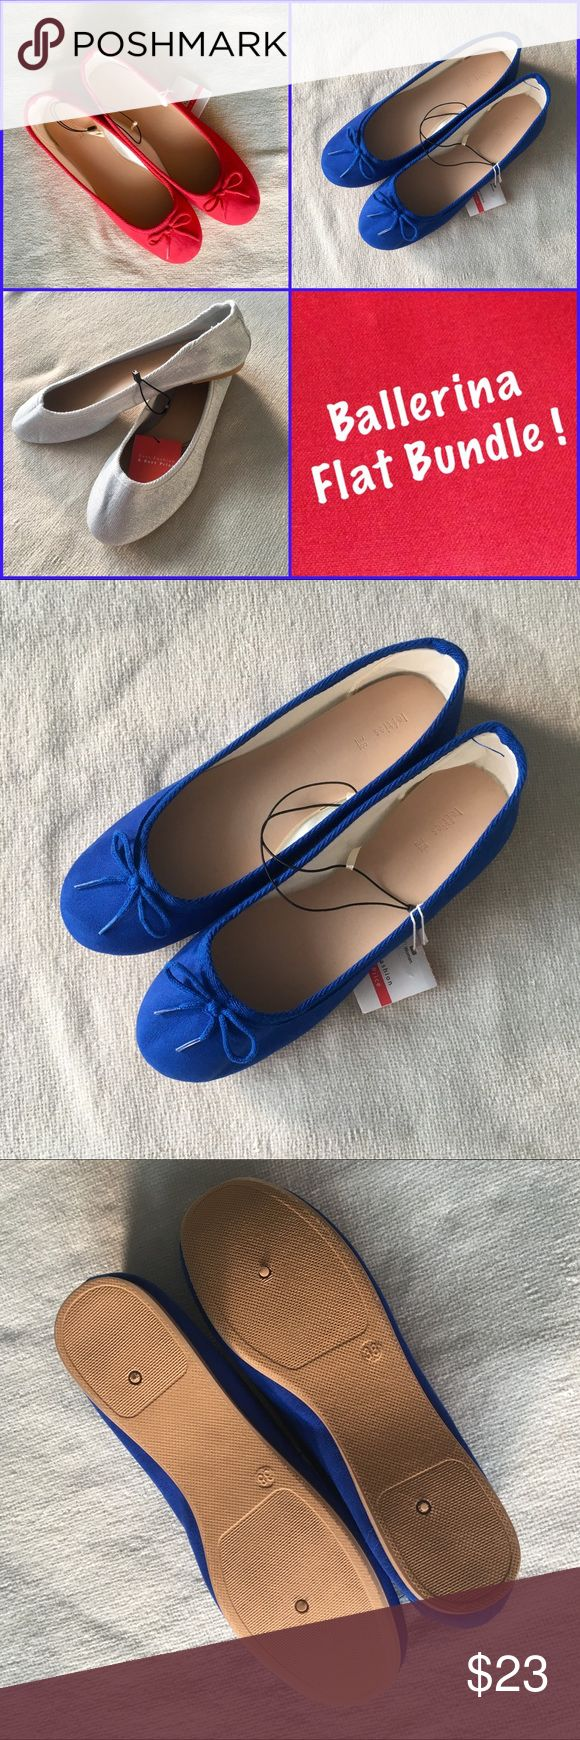 ‼️Lefties (Zara) Size 38 Ballerina Flat Bundle ‼️ New with tags 3 pairs of Lefties (Zara brand) Ballerina Flat Bundle. Size 38. These flats are very soft and confortable shoes. Colors are blue, red (both with a little bow detail design) and grey-silver (basic design). For your everyday looks or for your Christmas gifts 🎁 !!! Lefties Shoes Flats & Loafers